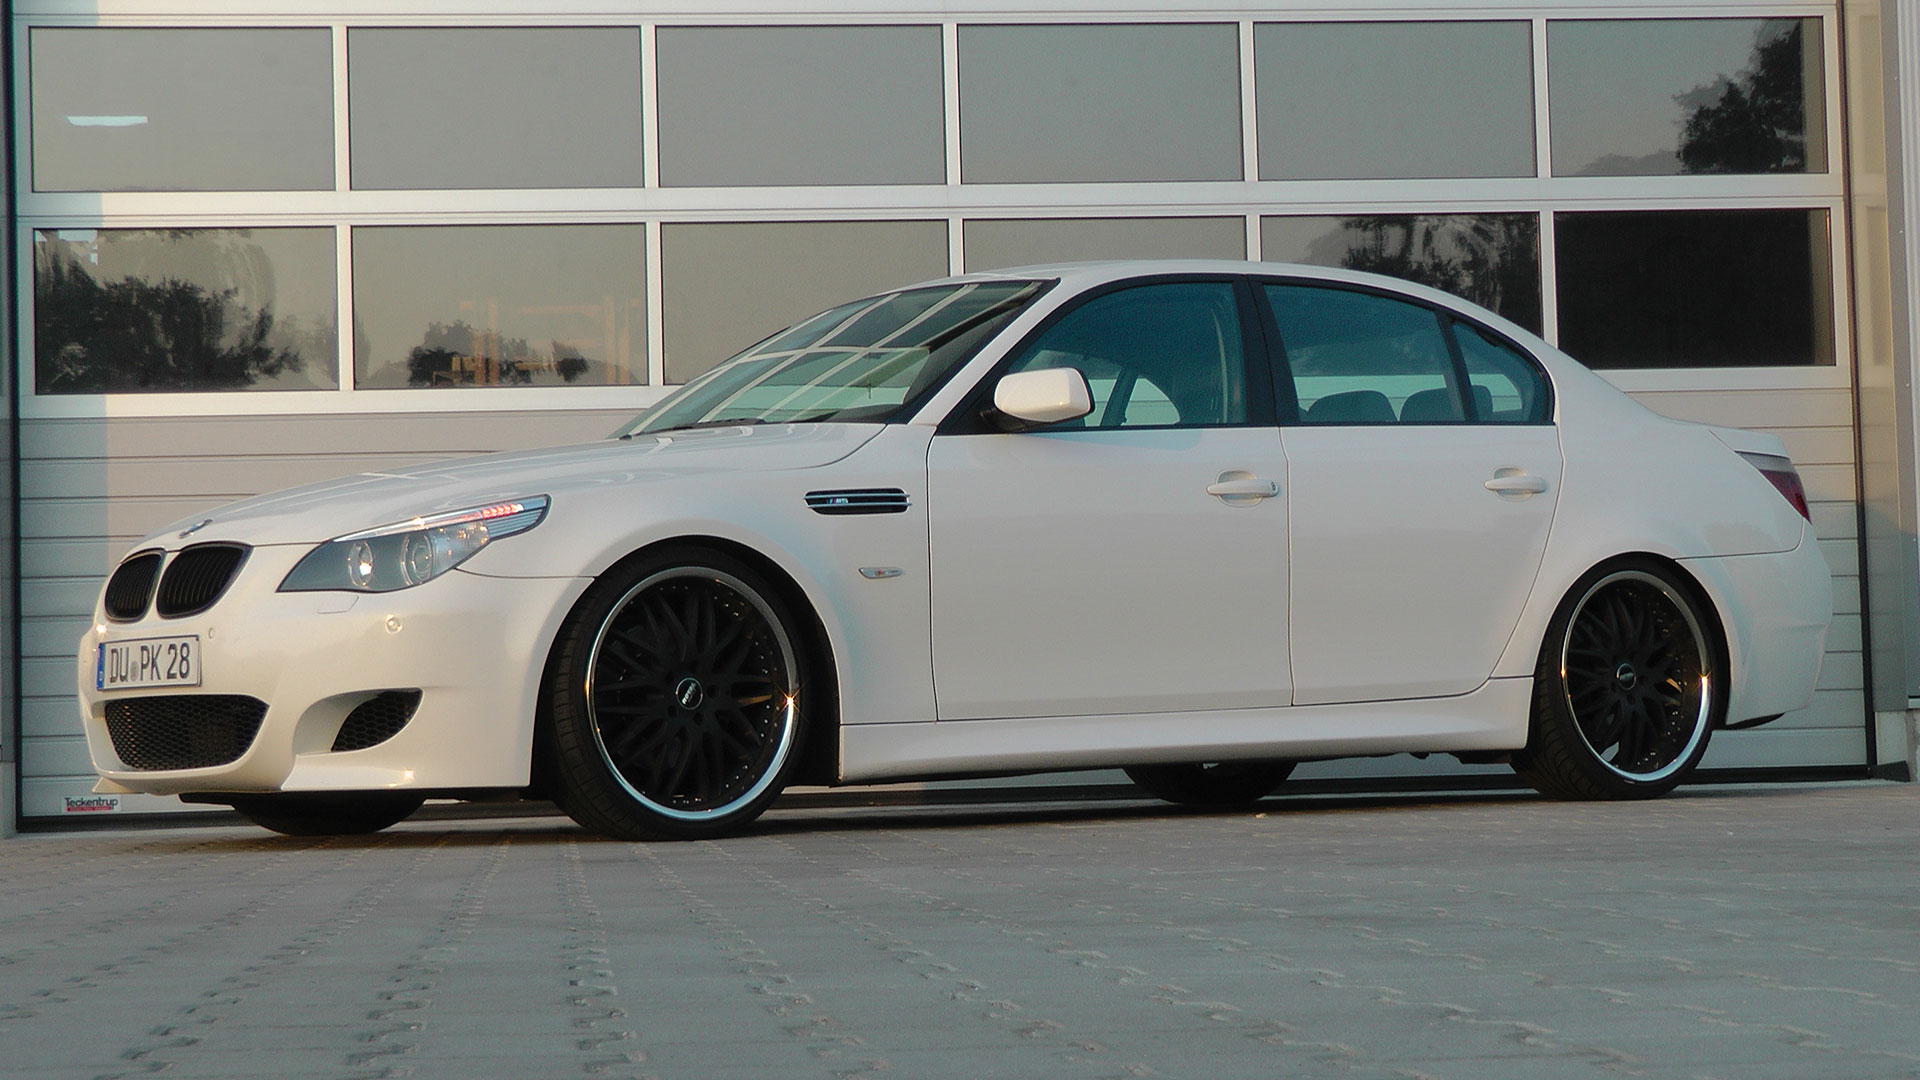 Bmw 5 Er E60 M5 Limousine Tuning Pd M5 Style Aerodynamik Kit Royal Wheels Gt Black In 8 5x20 10x20 M D Exclusive Cardesign